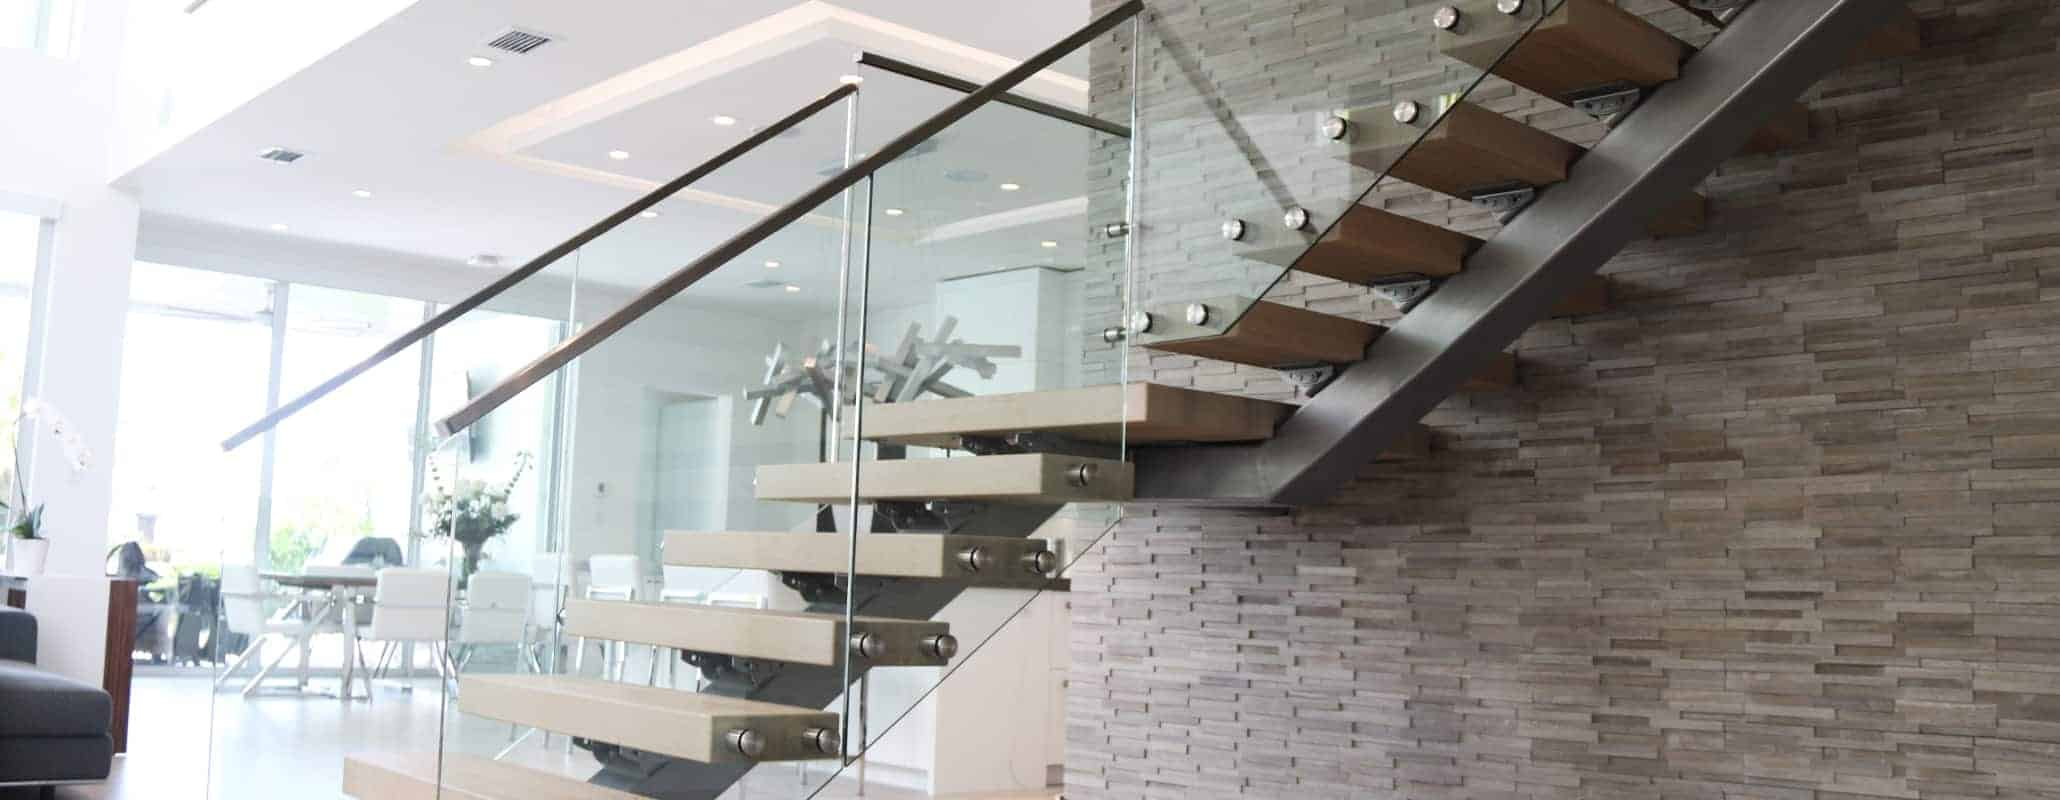 Staircase with glass railings in a residential setting with kitchen and living room in background.